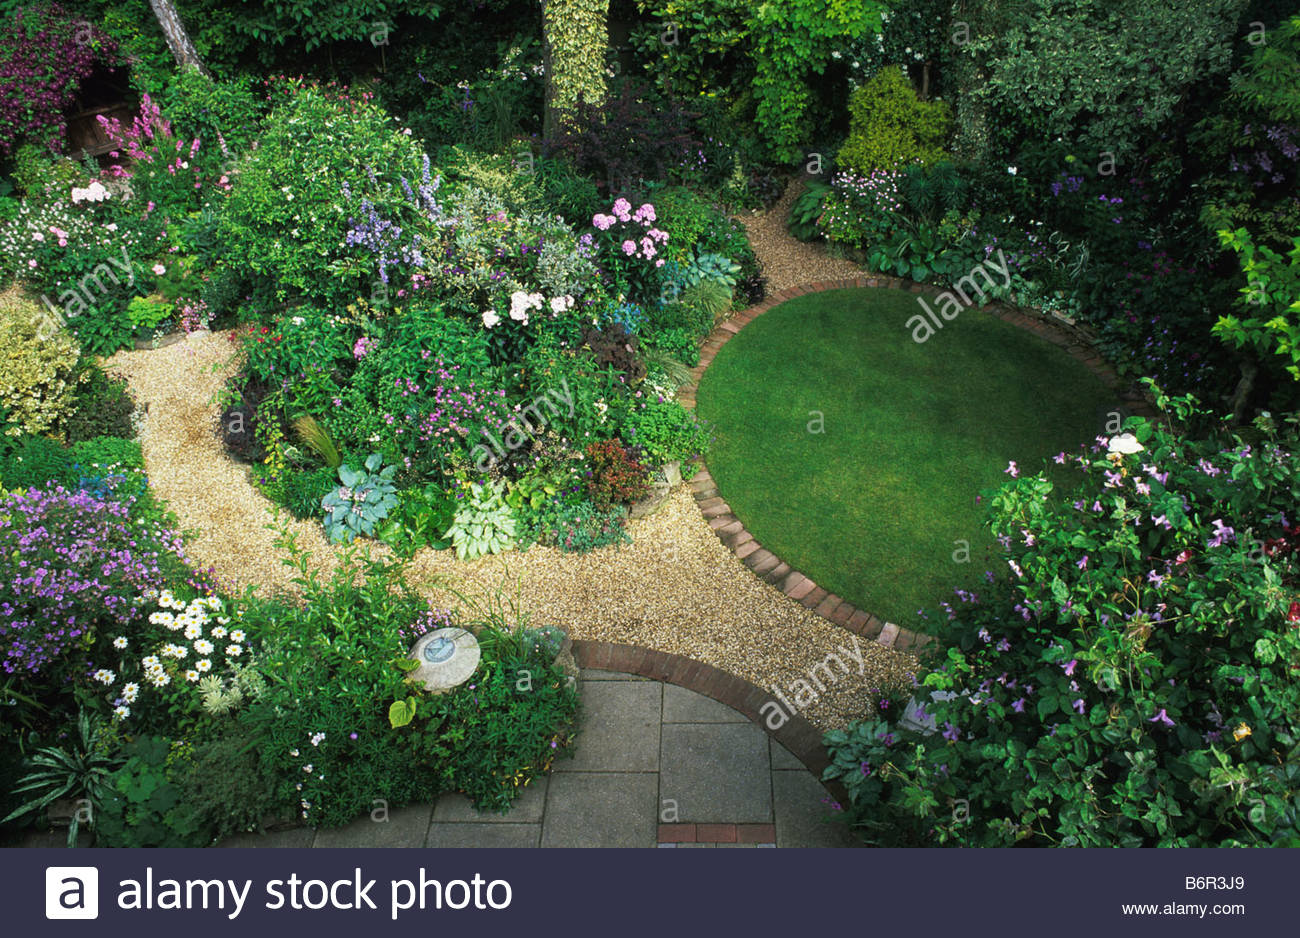 ladywood hampshire small semi shady garden with two circular design elements lawn and flower bed with - Garden Design Circular Lawns